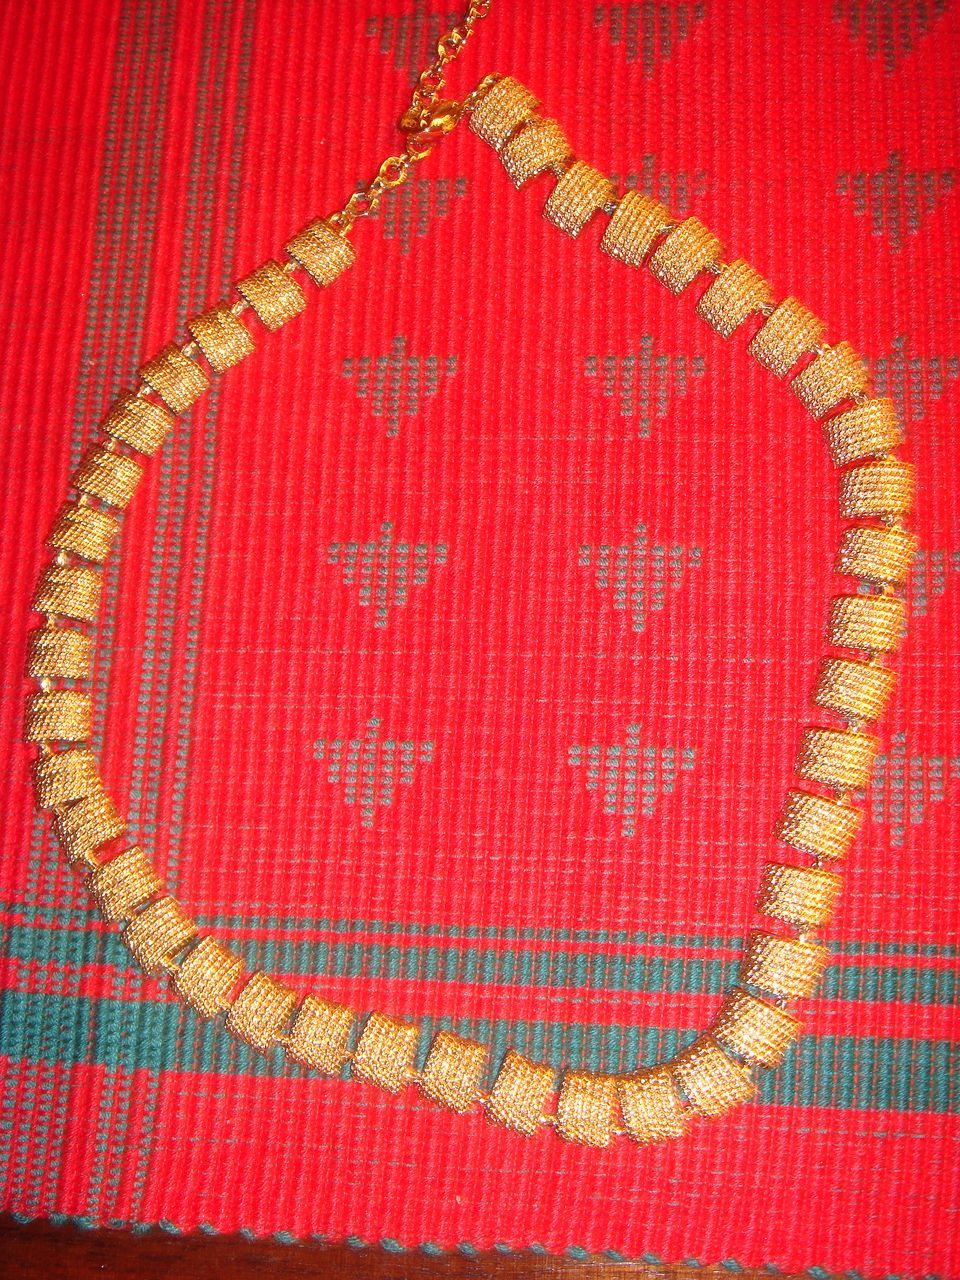 Vintage Napier Gold Tone Necklace 41 Links!